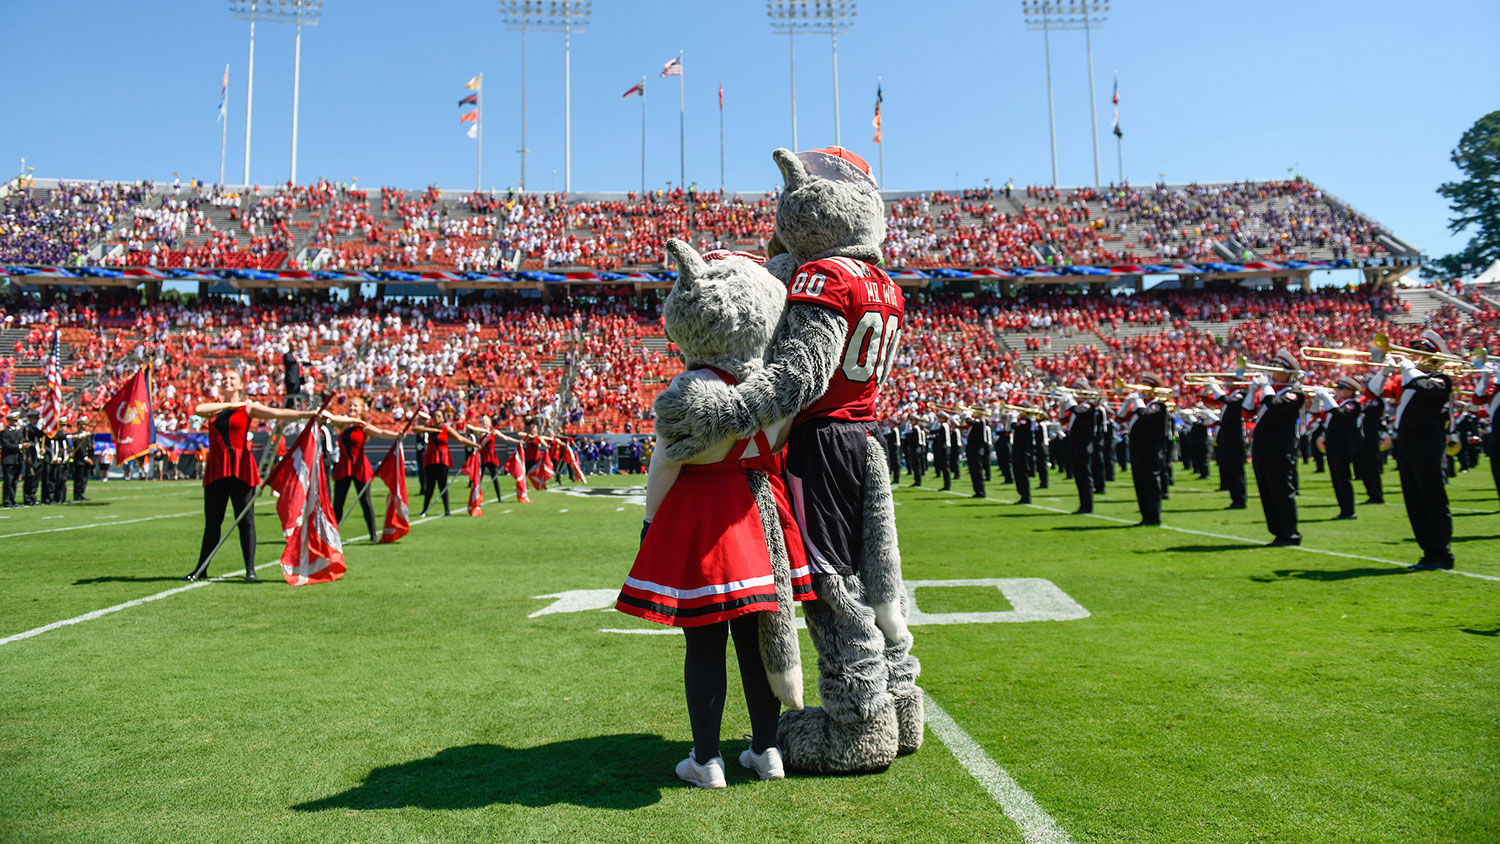 Mr. and Ms. Wuf, NC State mascots at football game